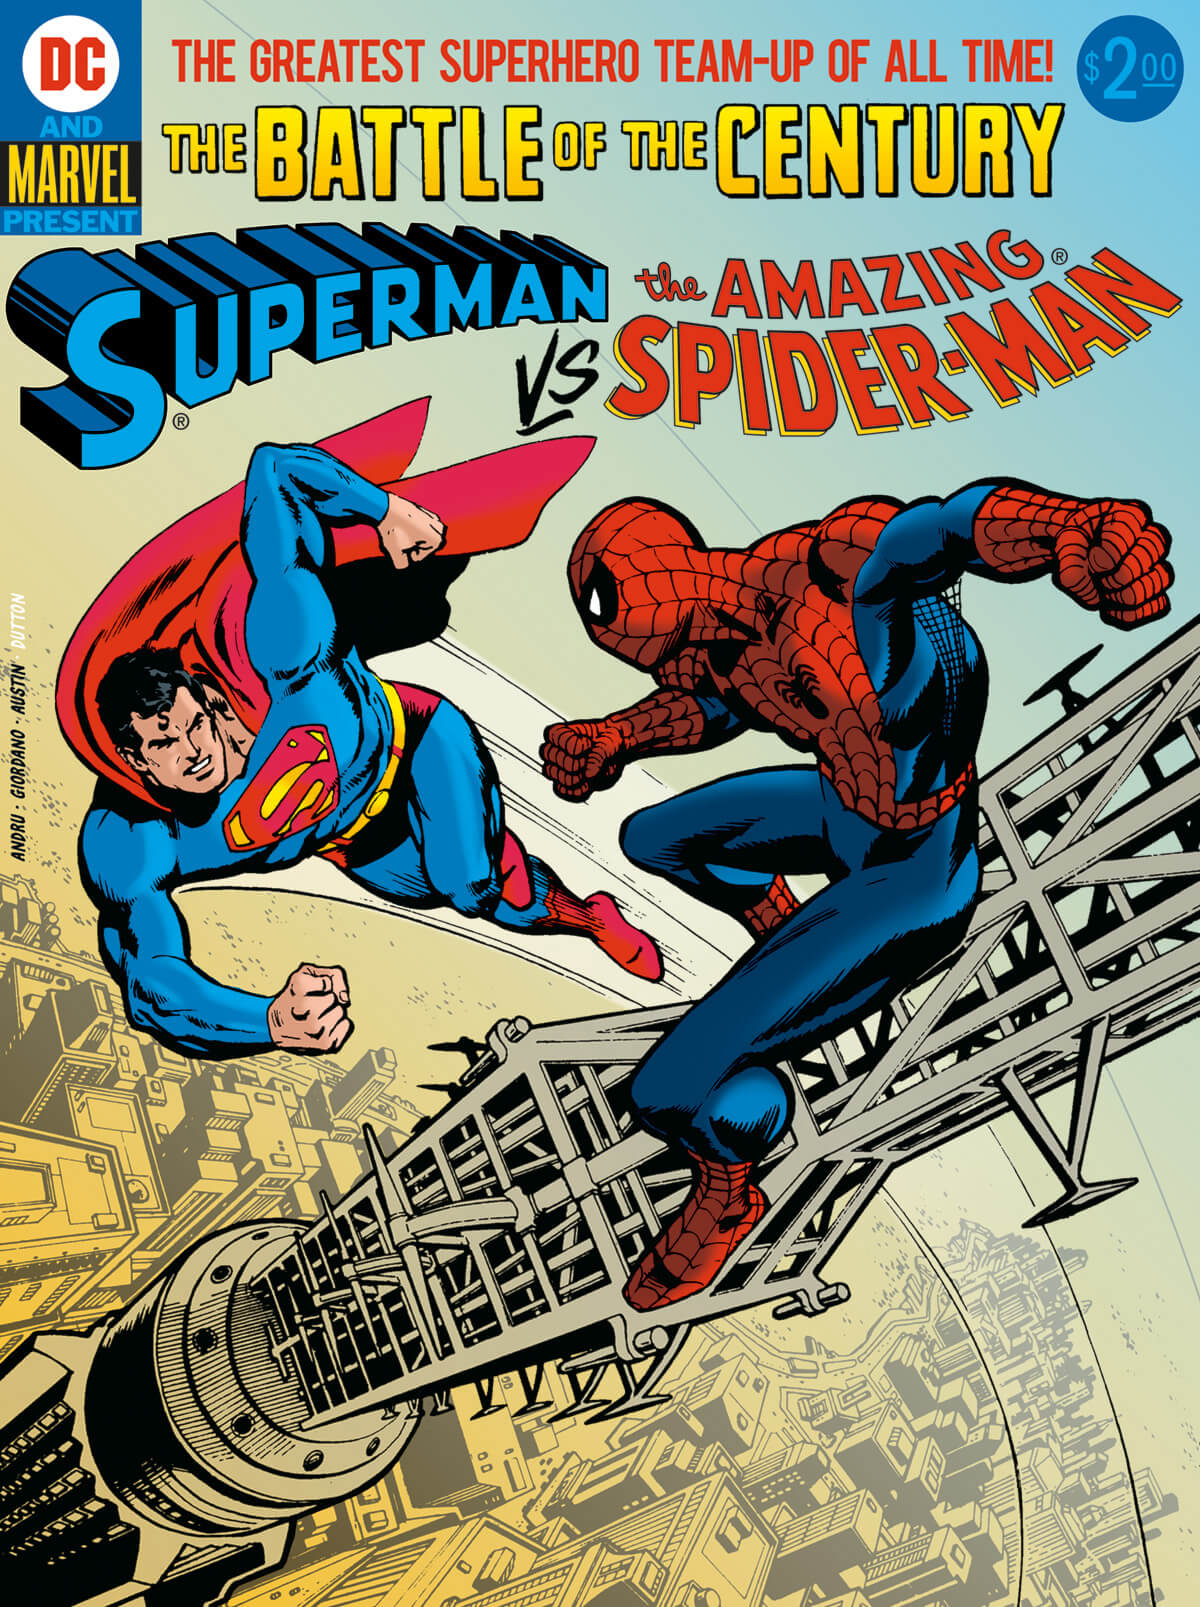 Superman vs. Spider-Man cover by Ross Andru and Dick Giordano